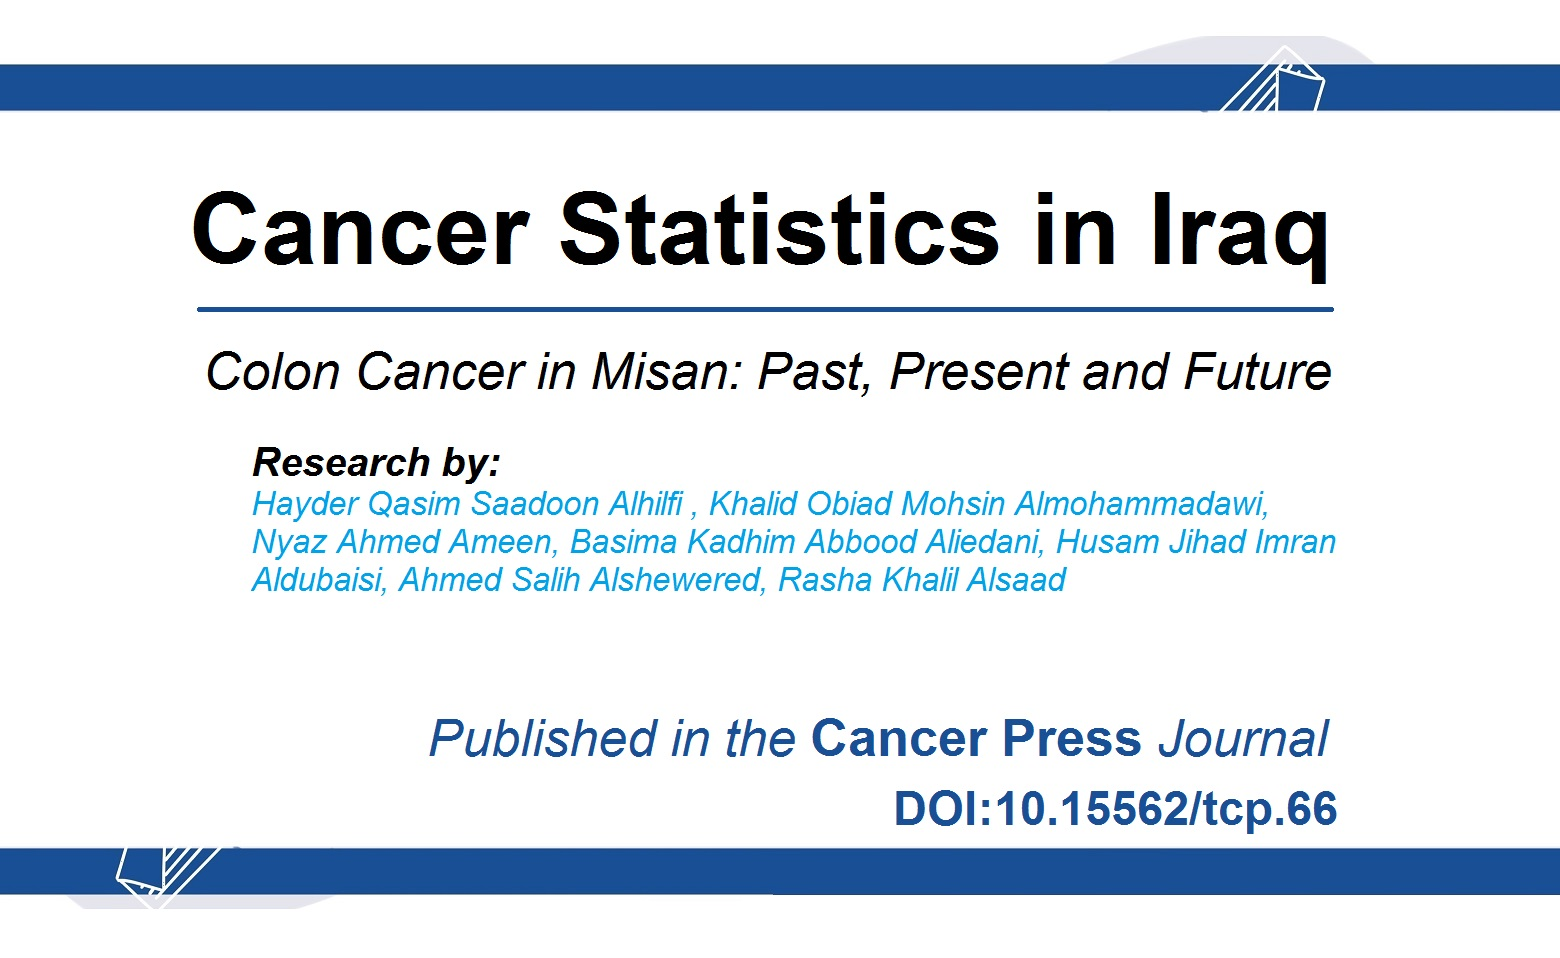 Cancer Statistics in Iraq